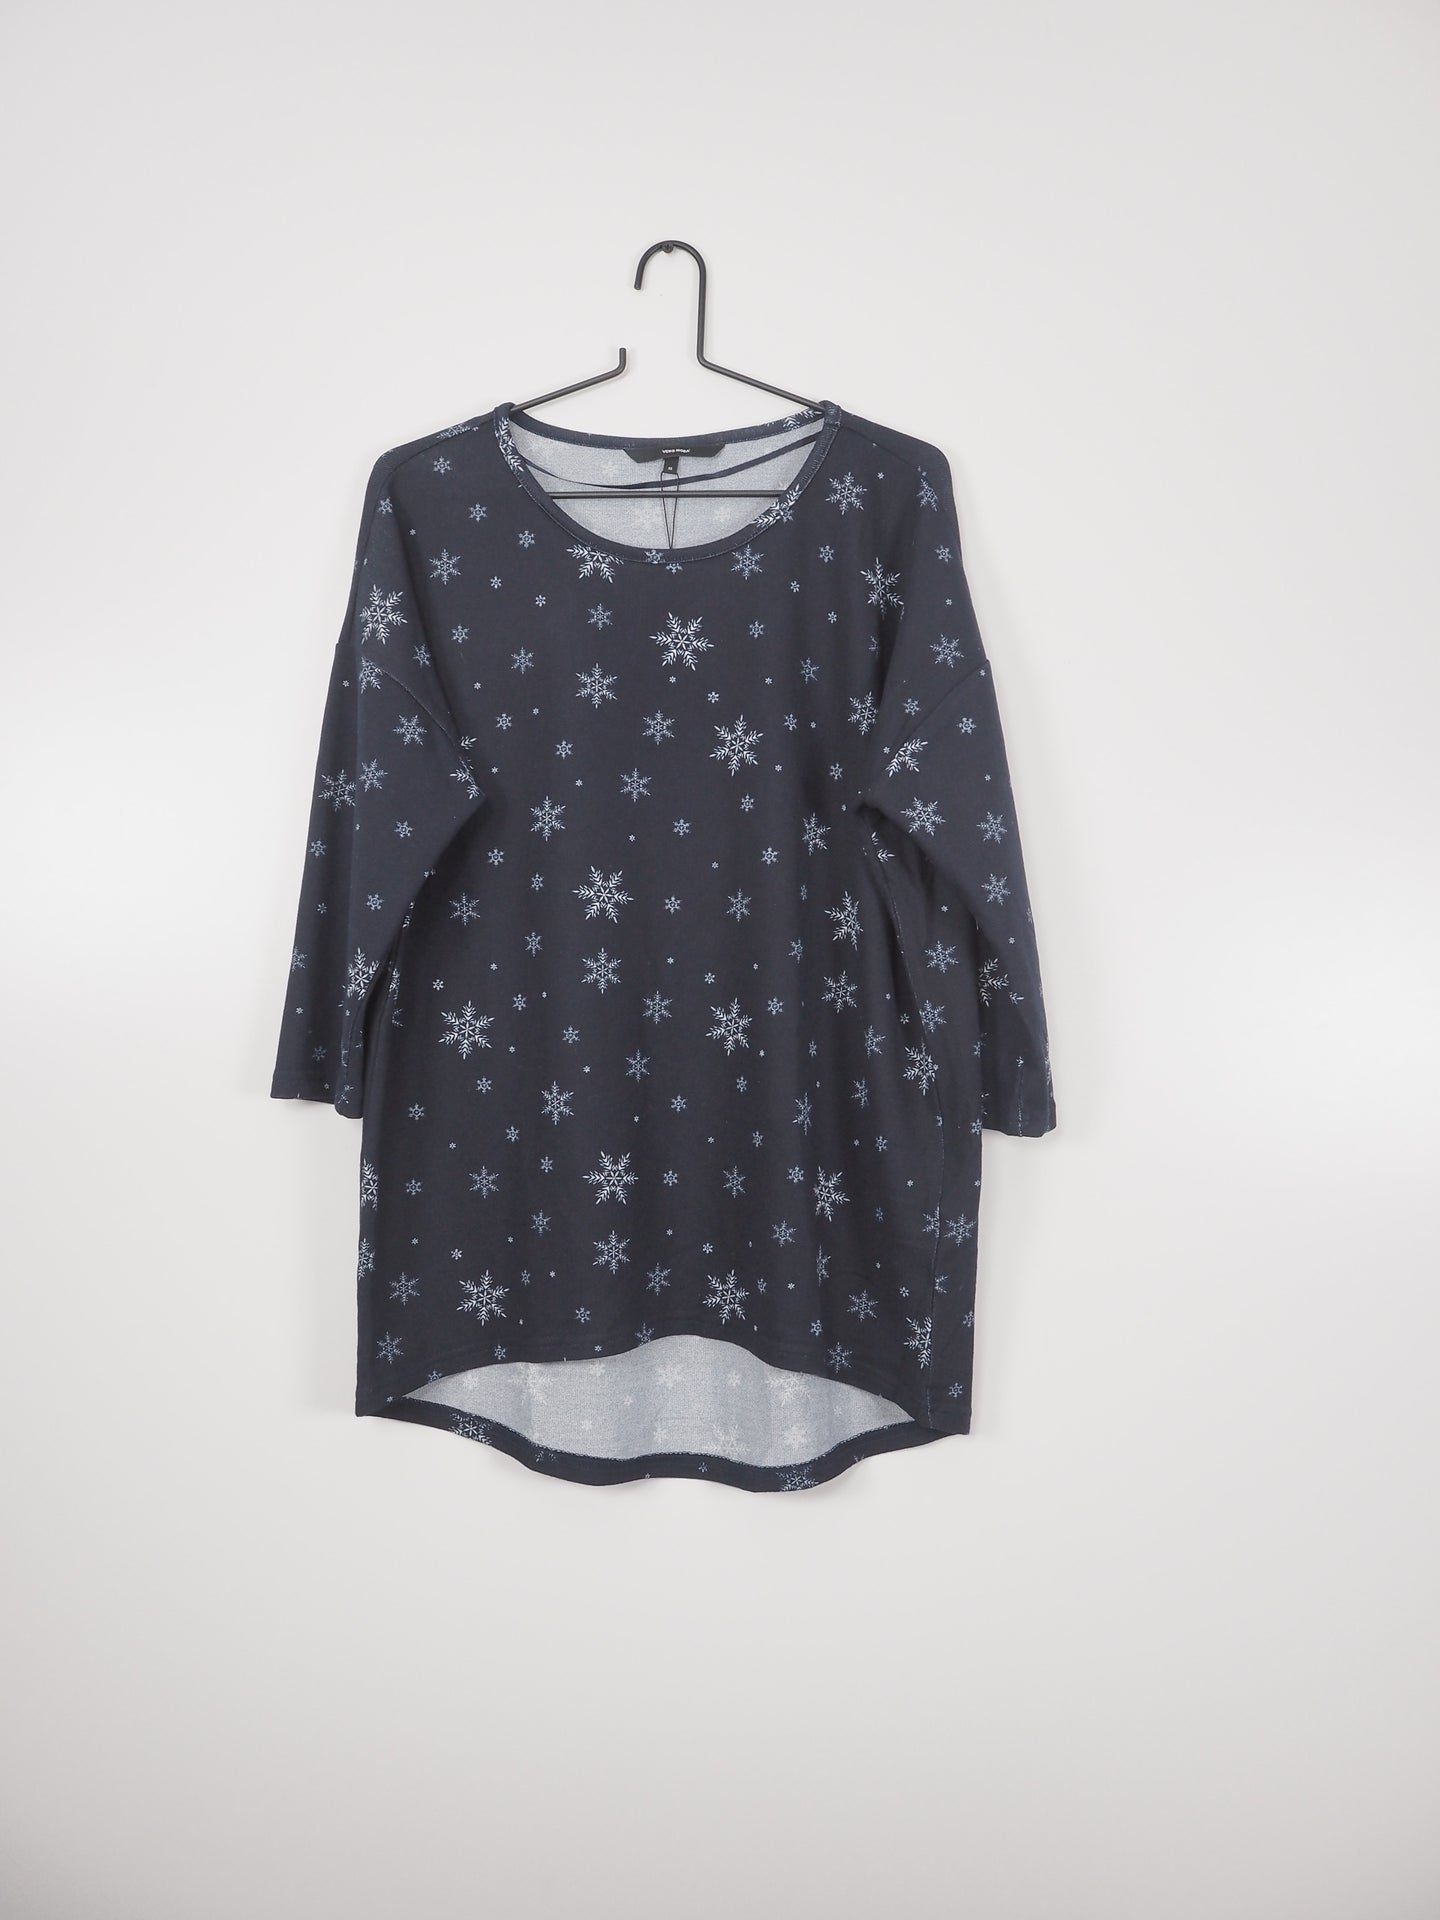 Snowy night top (Vero Moda)